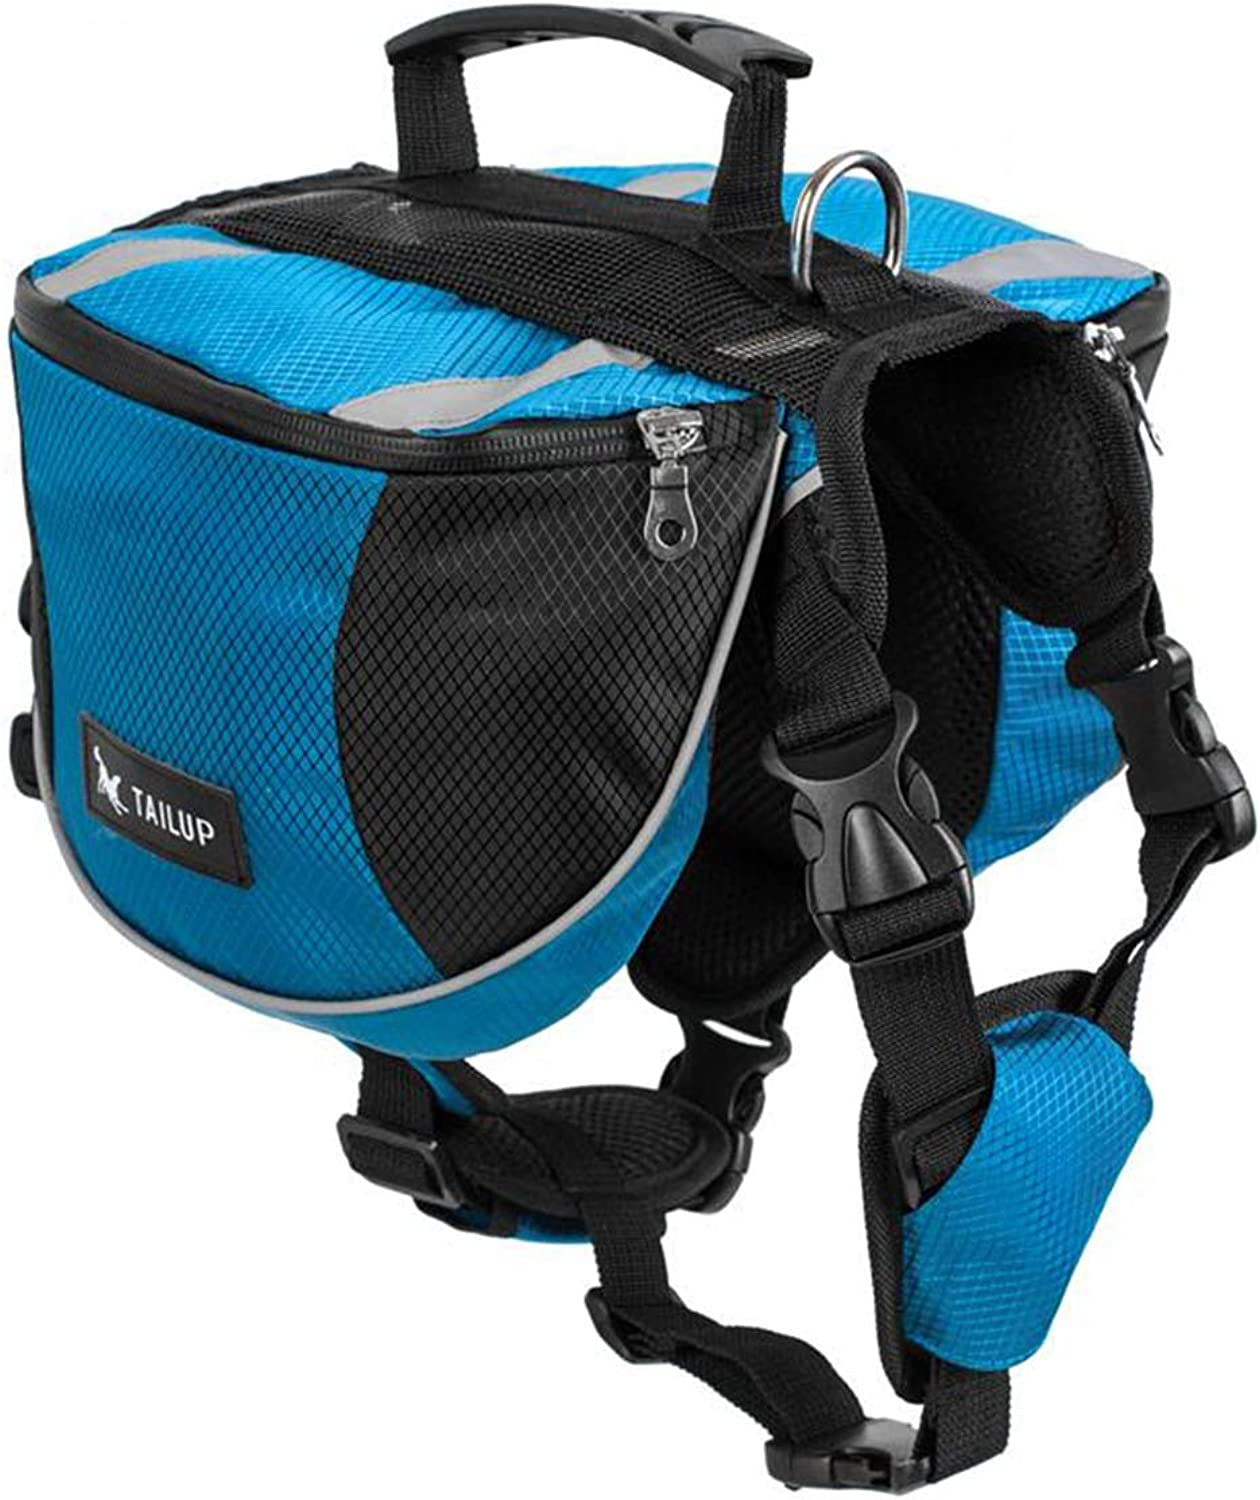 PETFDH Luxury Pet Outdoor Backpack Large Dog Adjustable Saddle Bag Harness Carrier for Traveling Hiking Camping Gorgeous bluee M